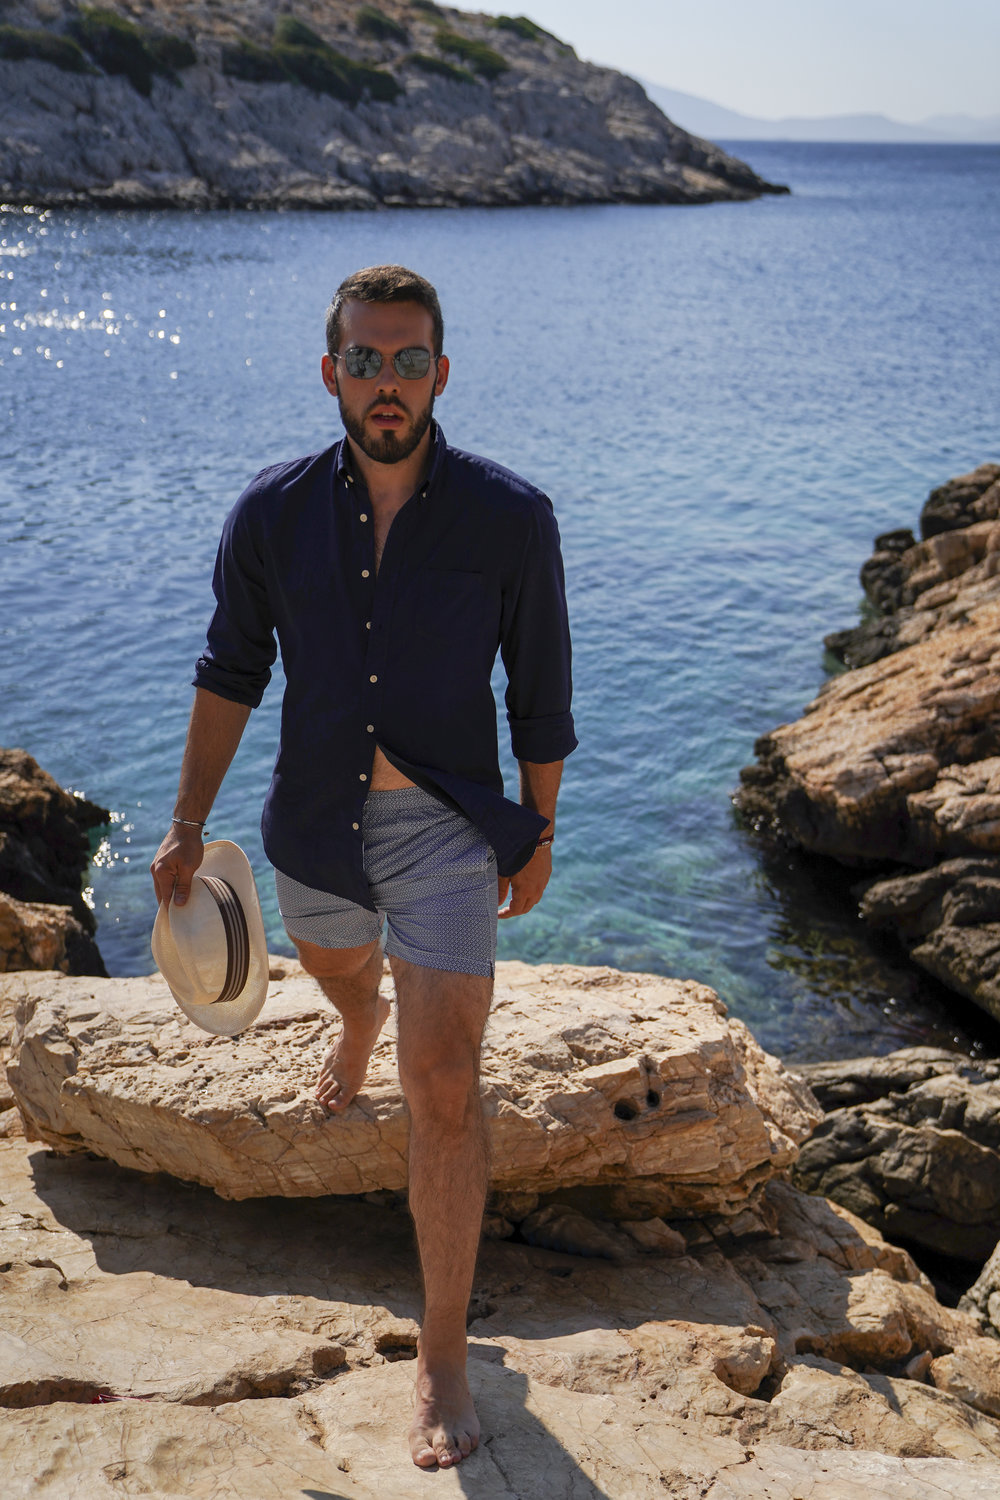 Swimsuit & Shirt: Hackett London / Sunglasses: Tomas Maier